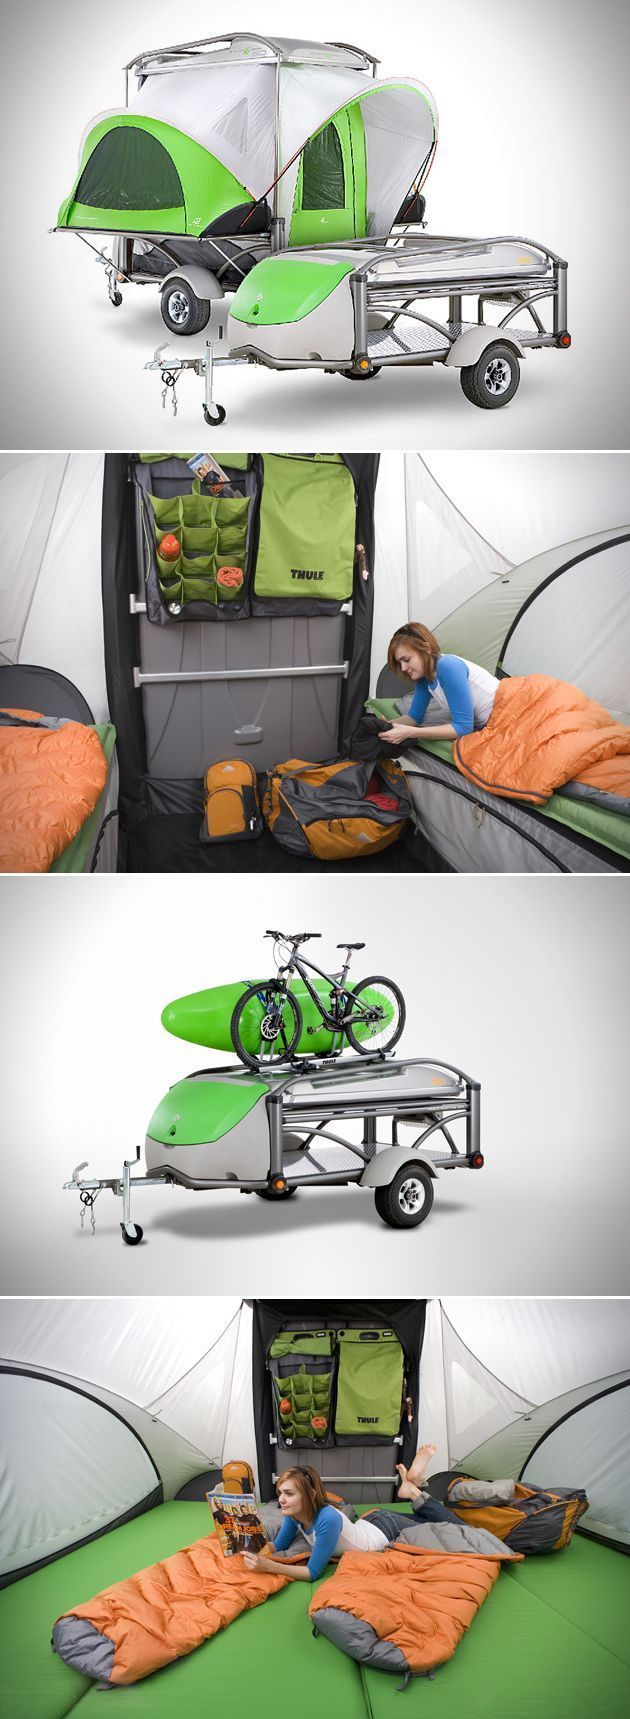 Gadgets That Are Too Cool To Resist Nice ** Maybe for the next roadtrip... on my wish list. Go Camper Trailer from Sylvanspo...Nice ** Maybe for the next roadtrip... on my wish list. Go Camper Trailer from Sylvanspo...